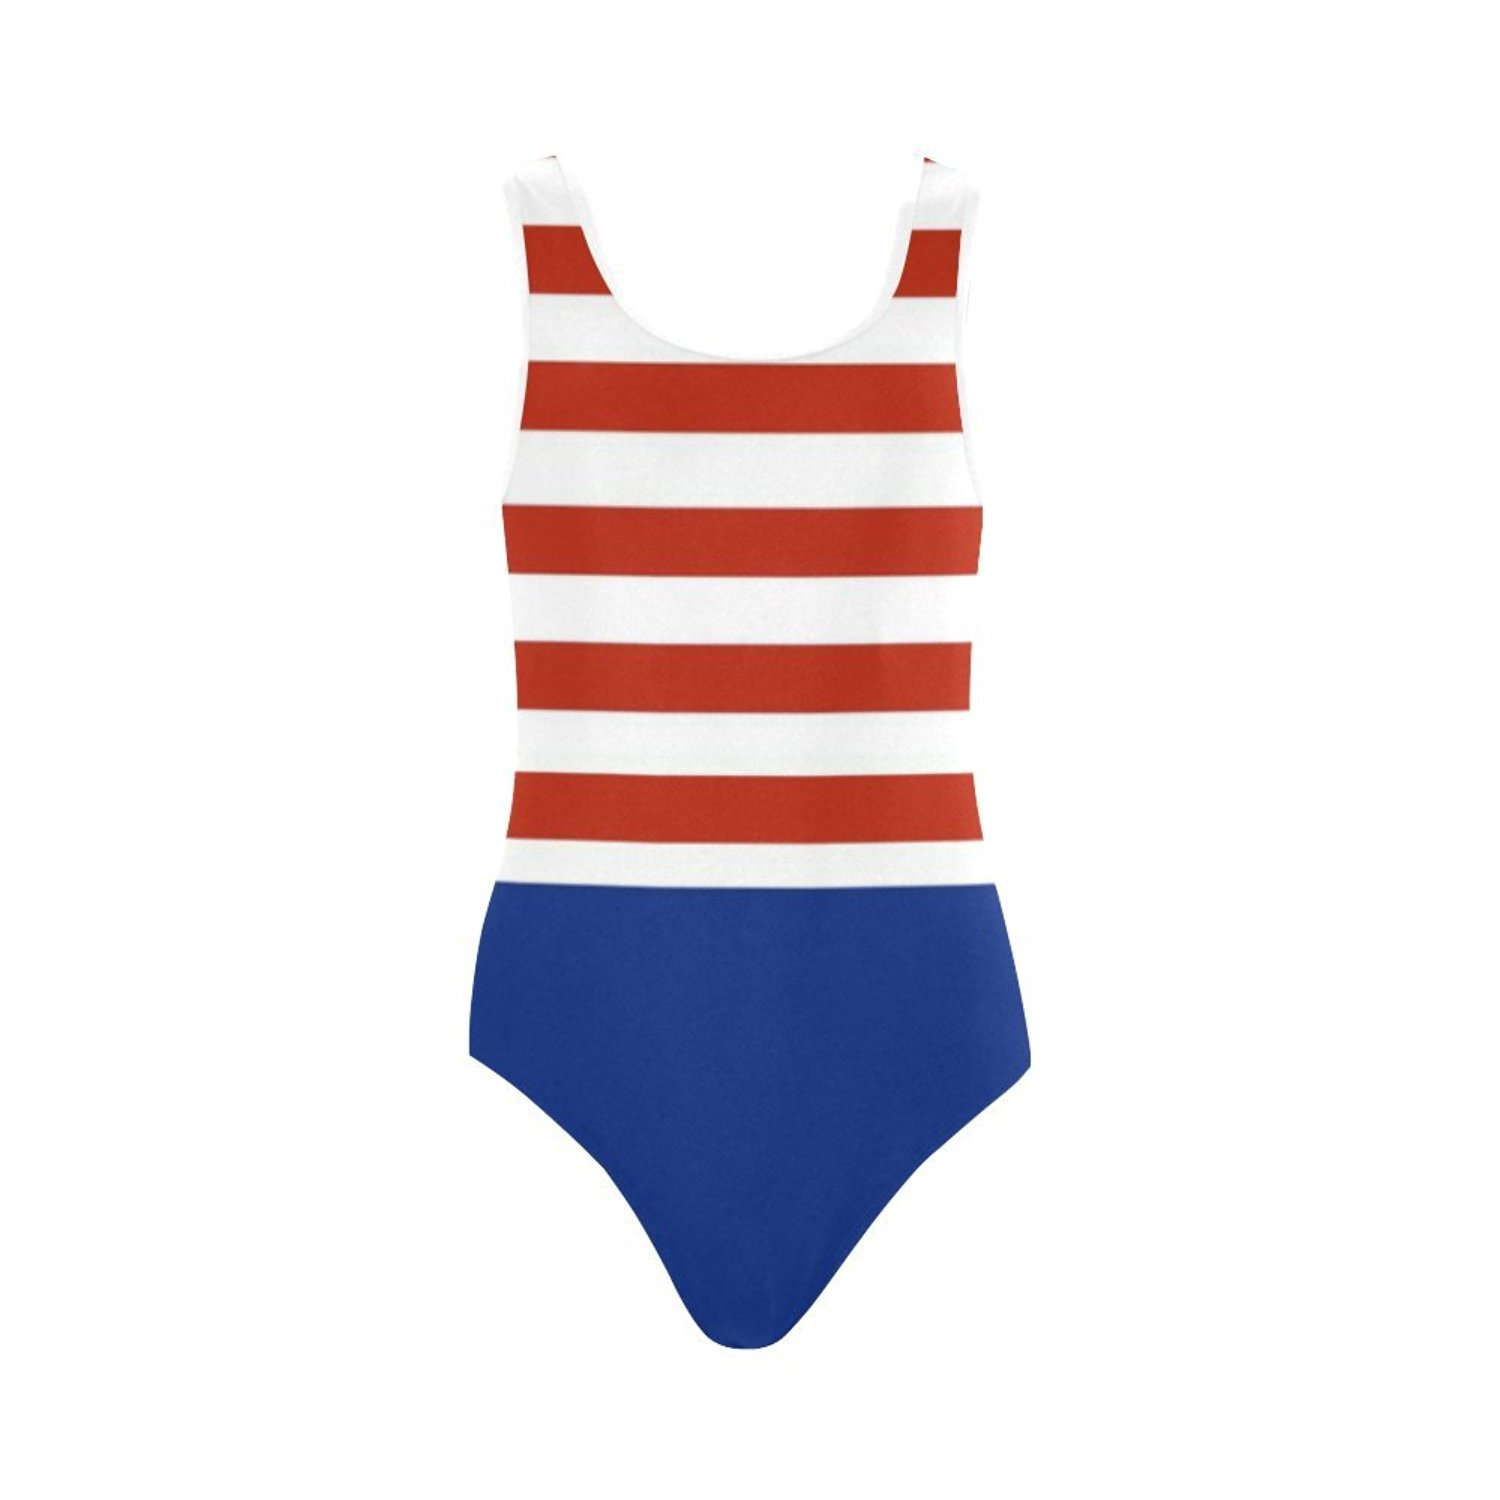 5cf0a5d34be8b Get Quotations · Find Arts Customized Red White And Blue Stripes Swimsuit  Vest One Piece Swimsuit Bathing Suit Beachwear